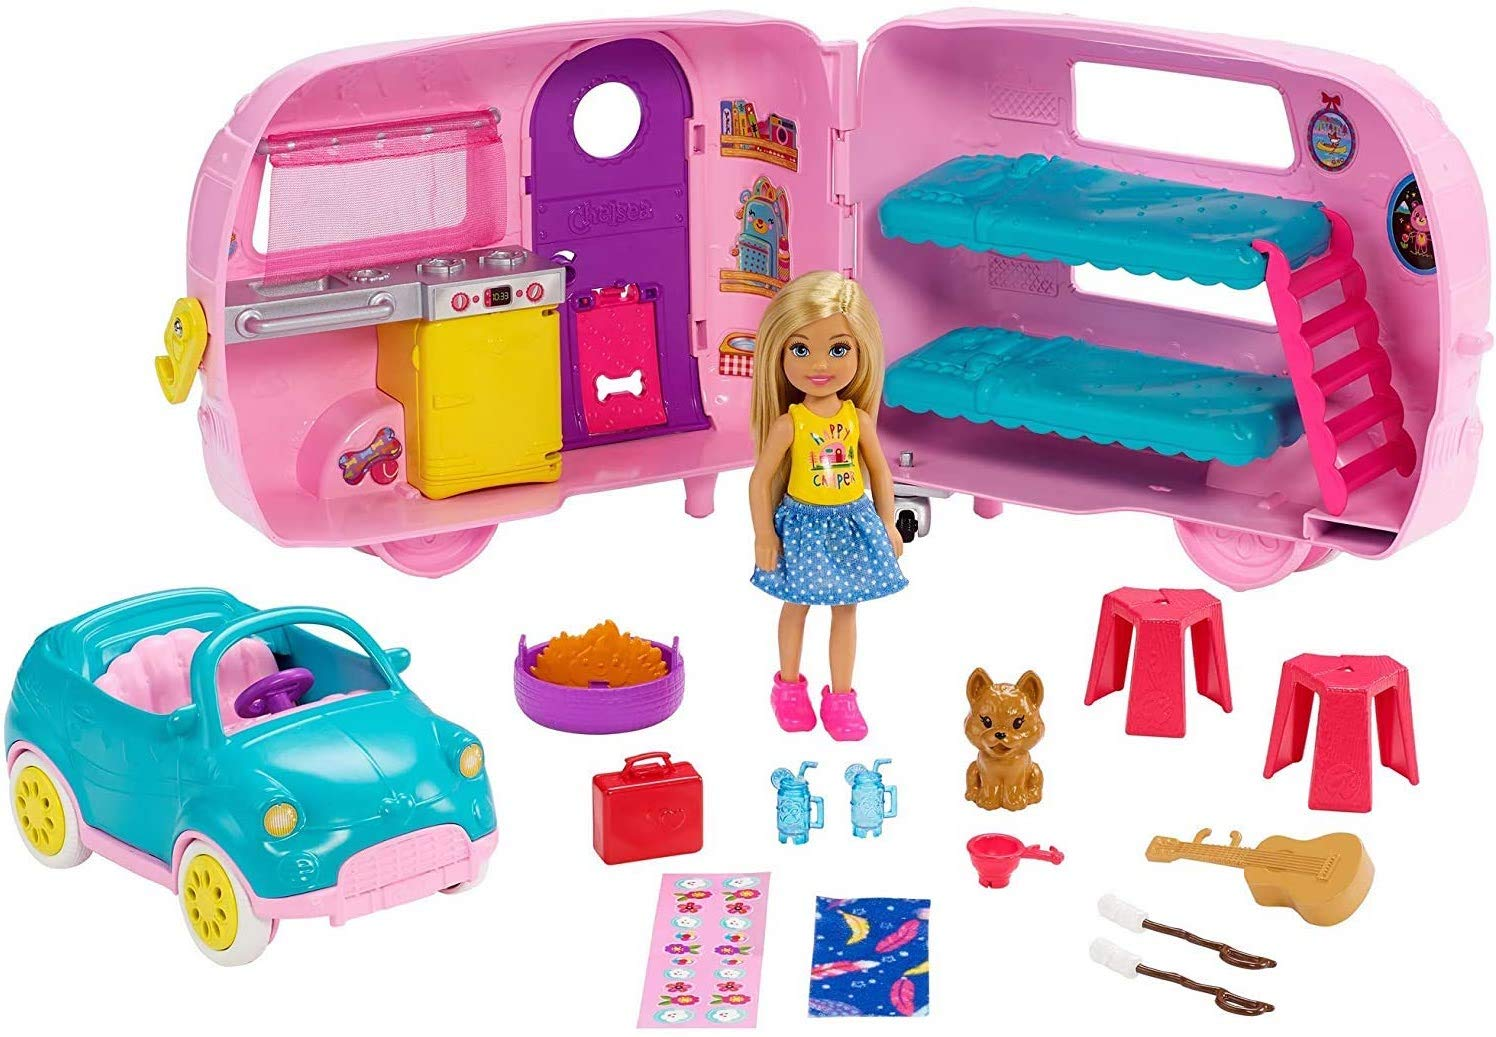 ​Barbie Club Chelsea Camper Playset with Chelsea Doll Puppy Car Camper Firepit Guitar and 10 Accessories Gift for 3 to 7 Year Olds